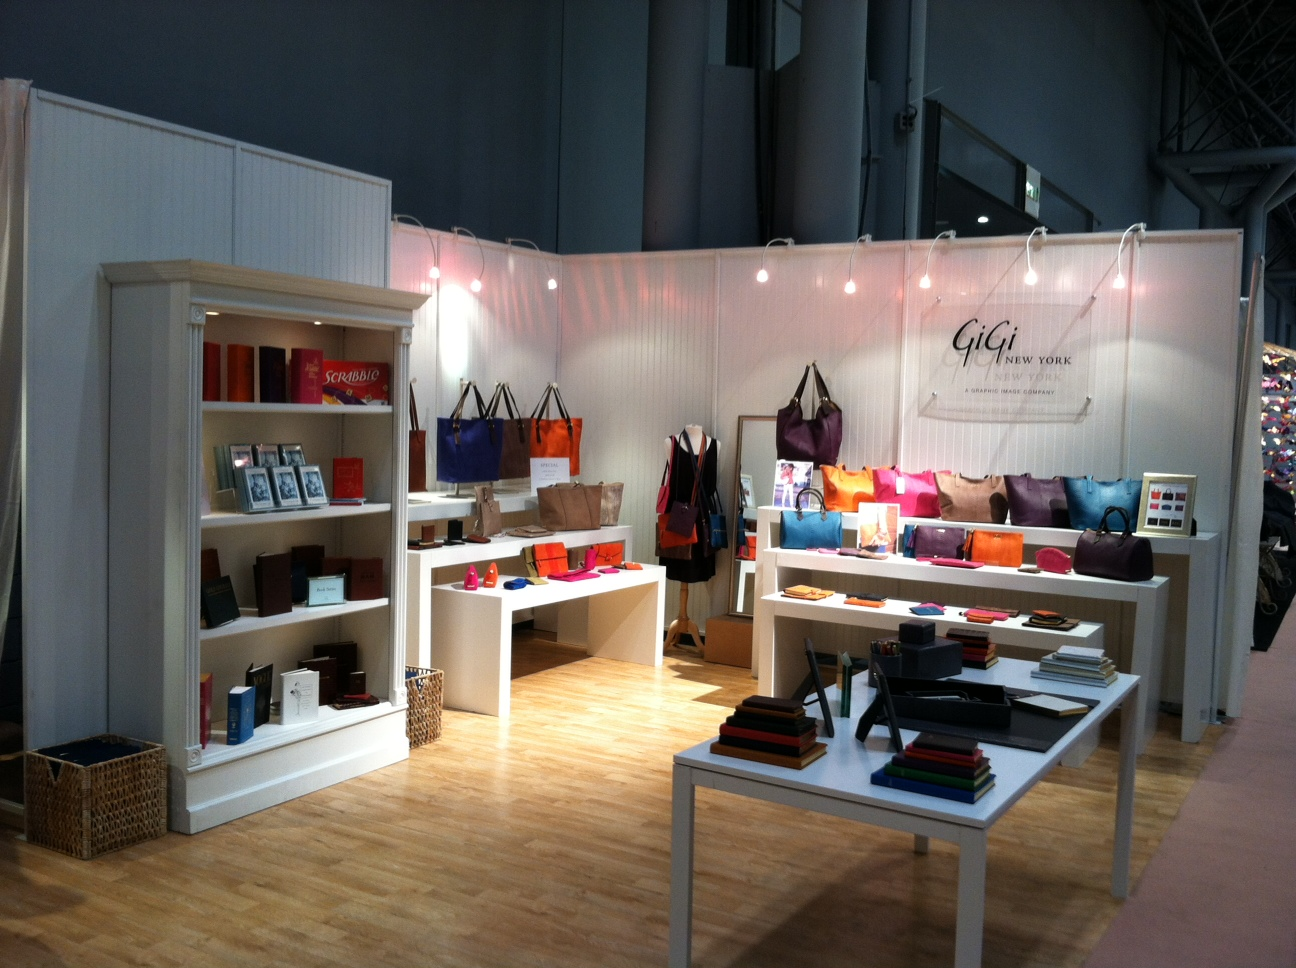 Graphic image and gigi new york at the 2012 new york for New york international gift fair